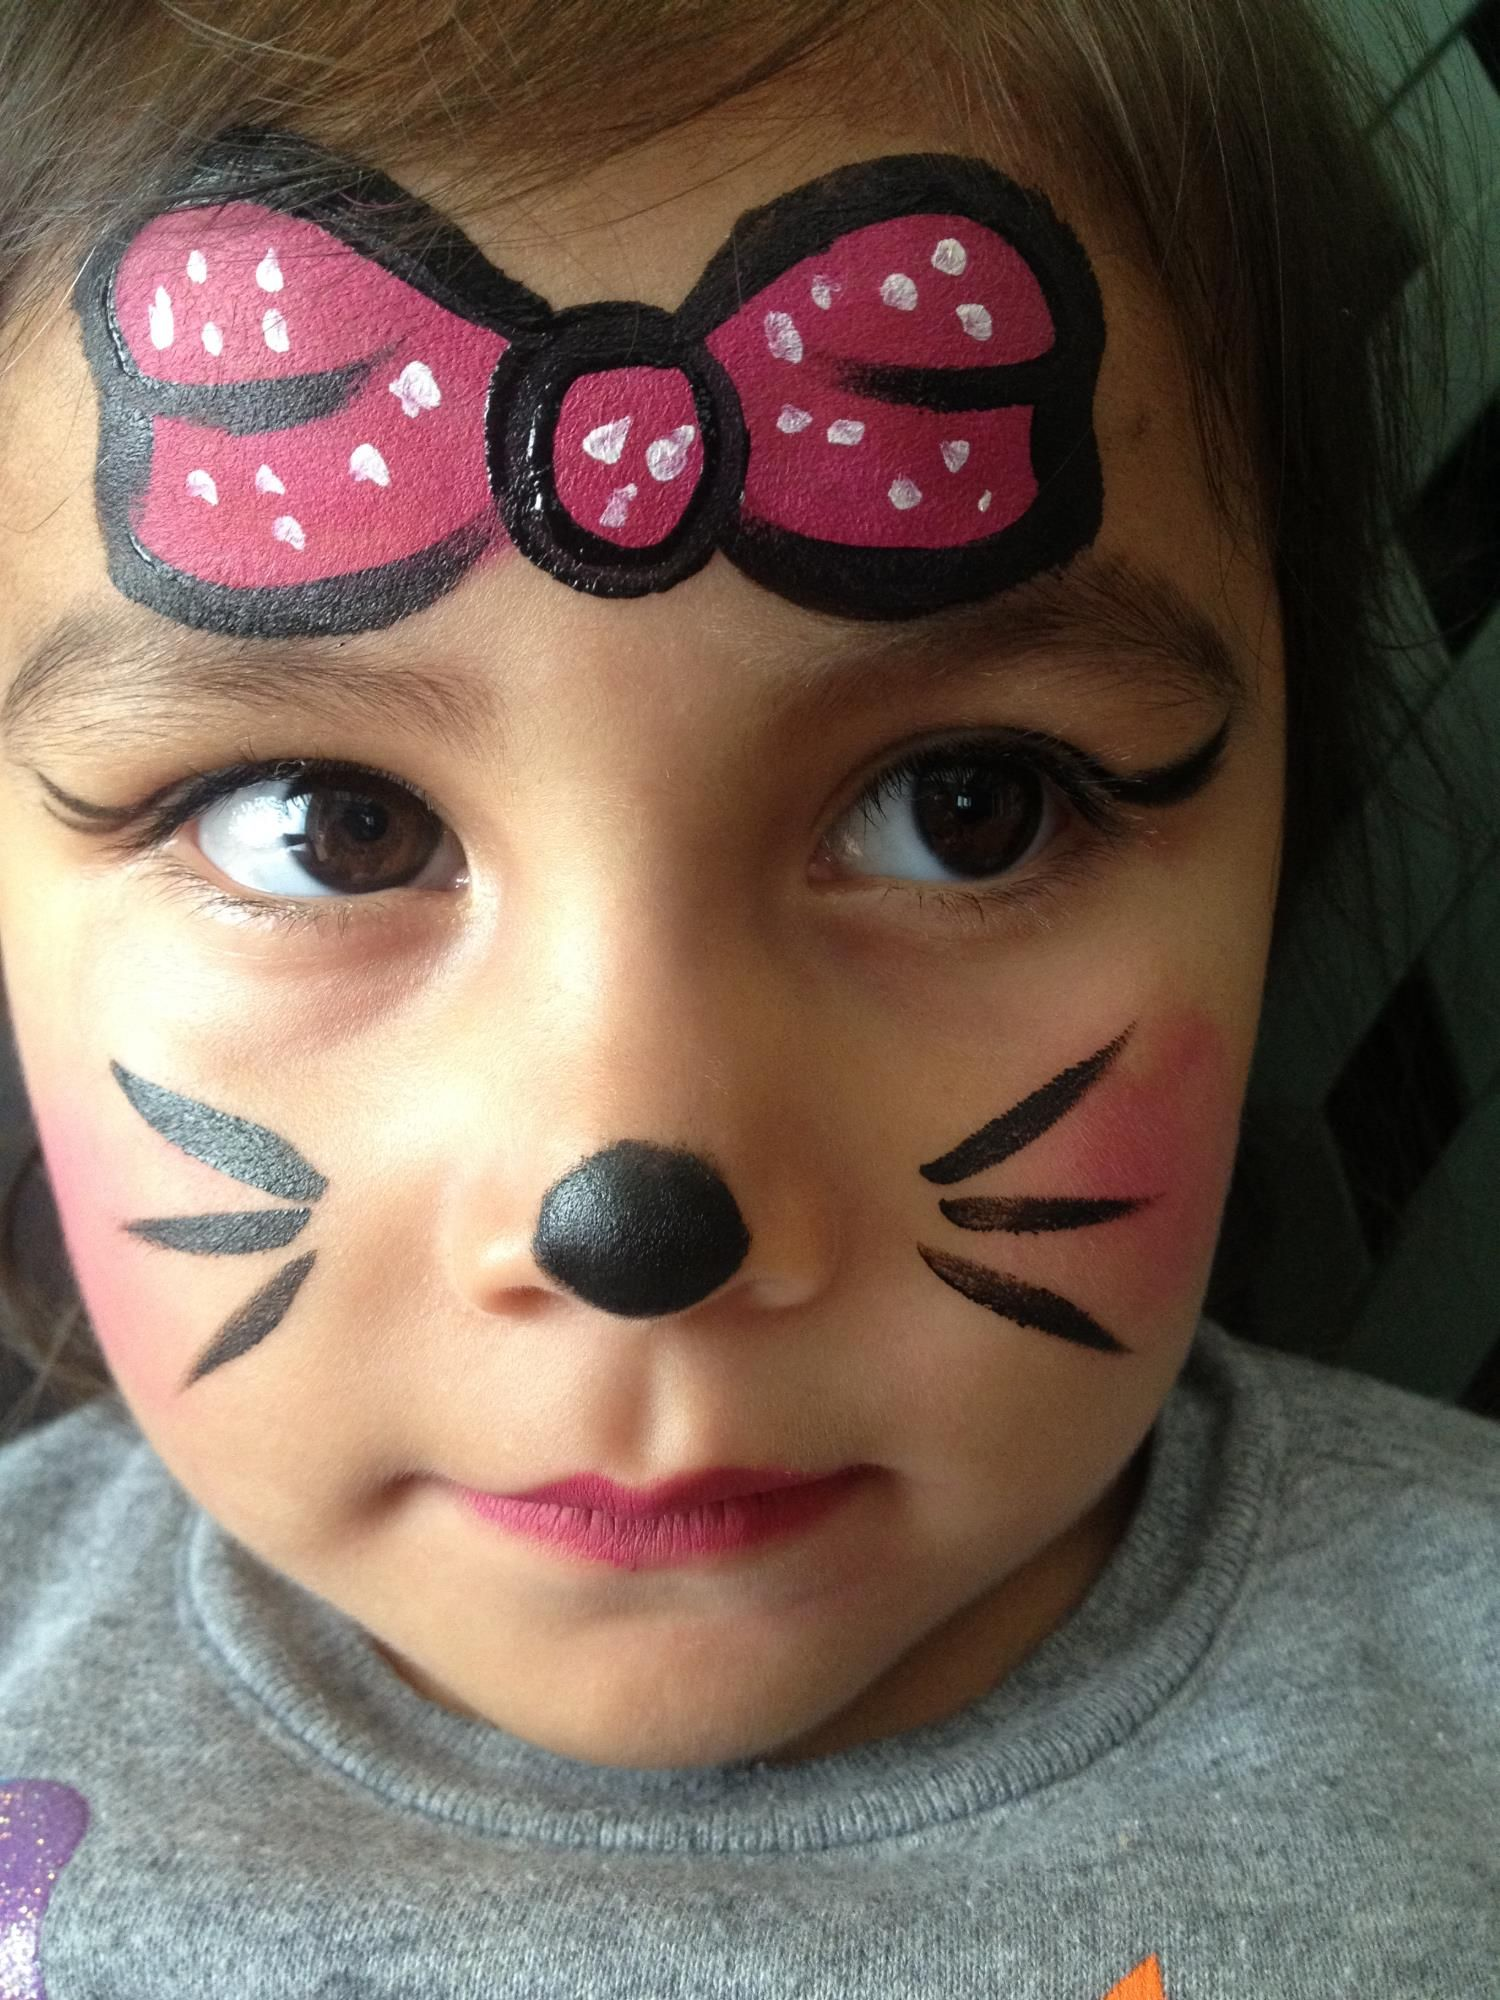 Easy face paint google search cool ideas pinterest easy face painting face paintings - Maquillage simple enfant ...